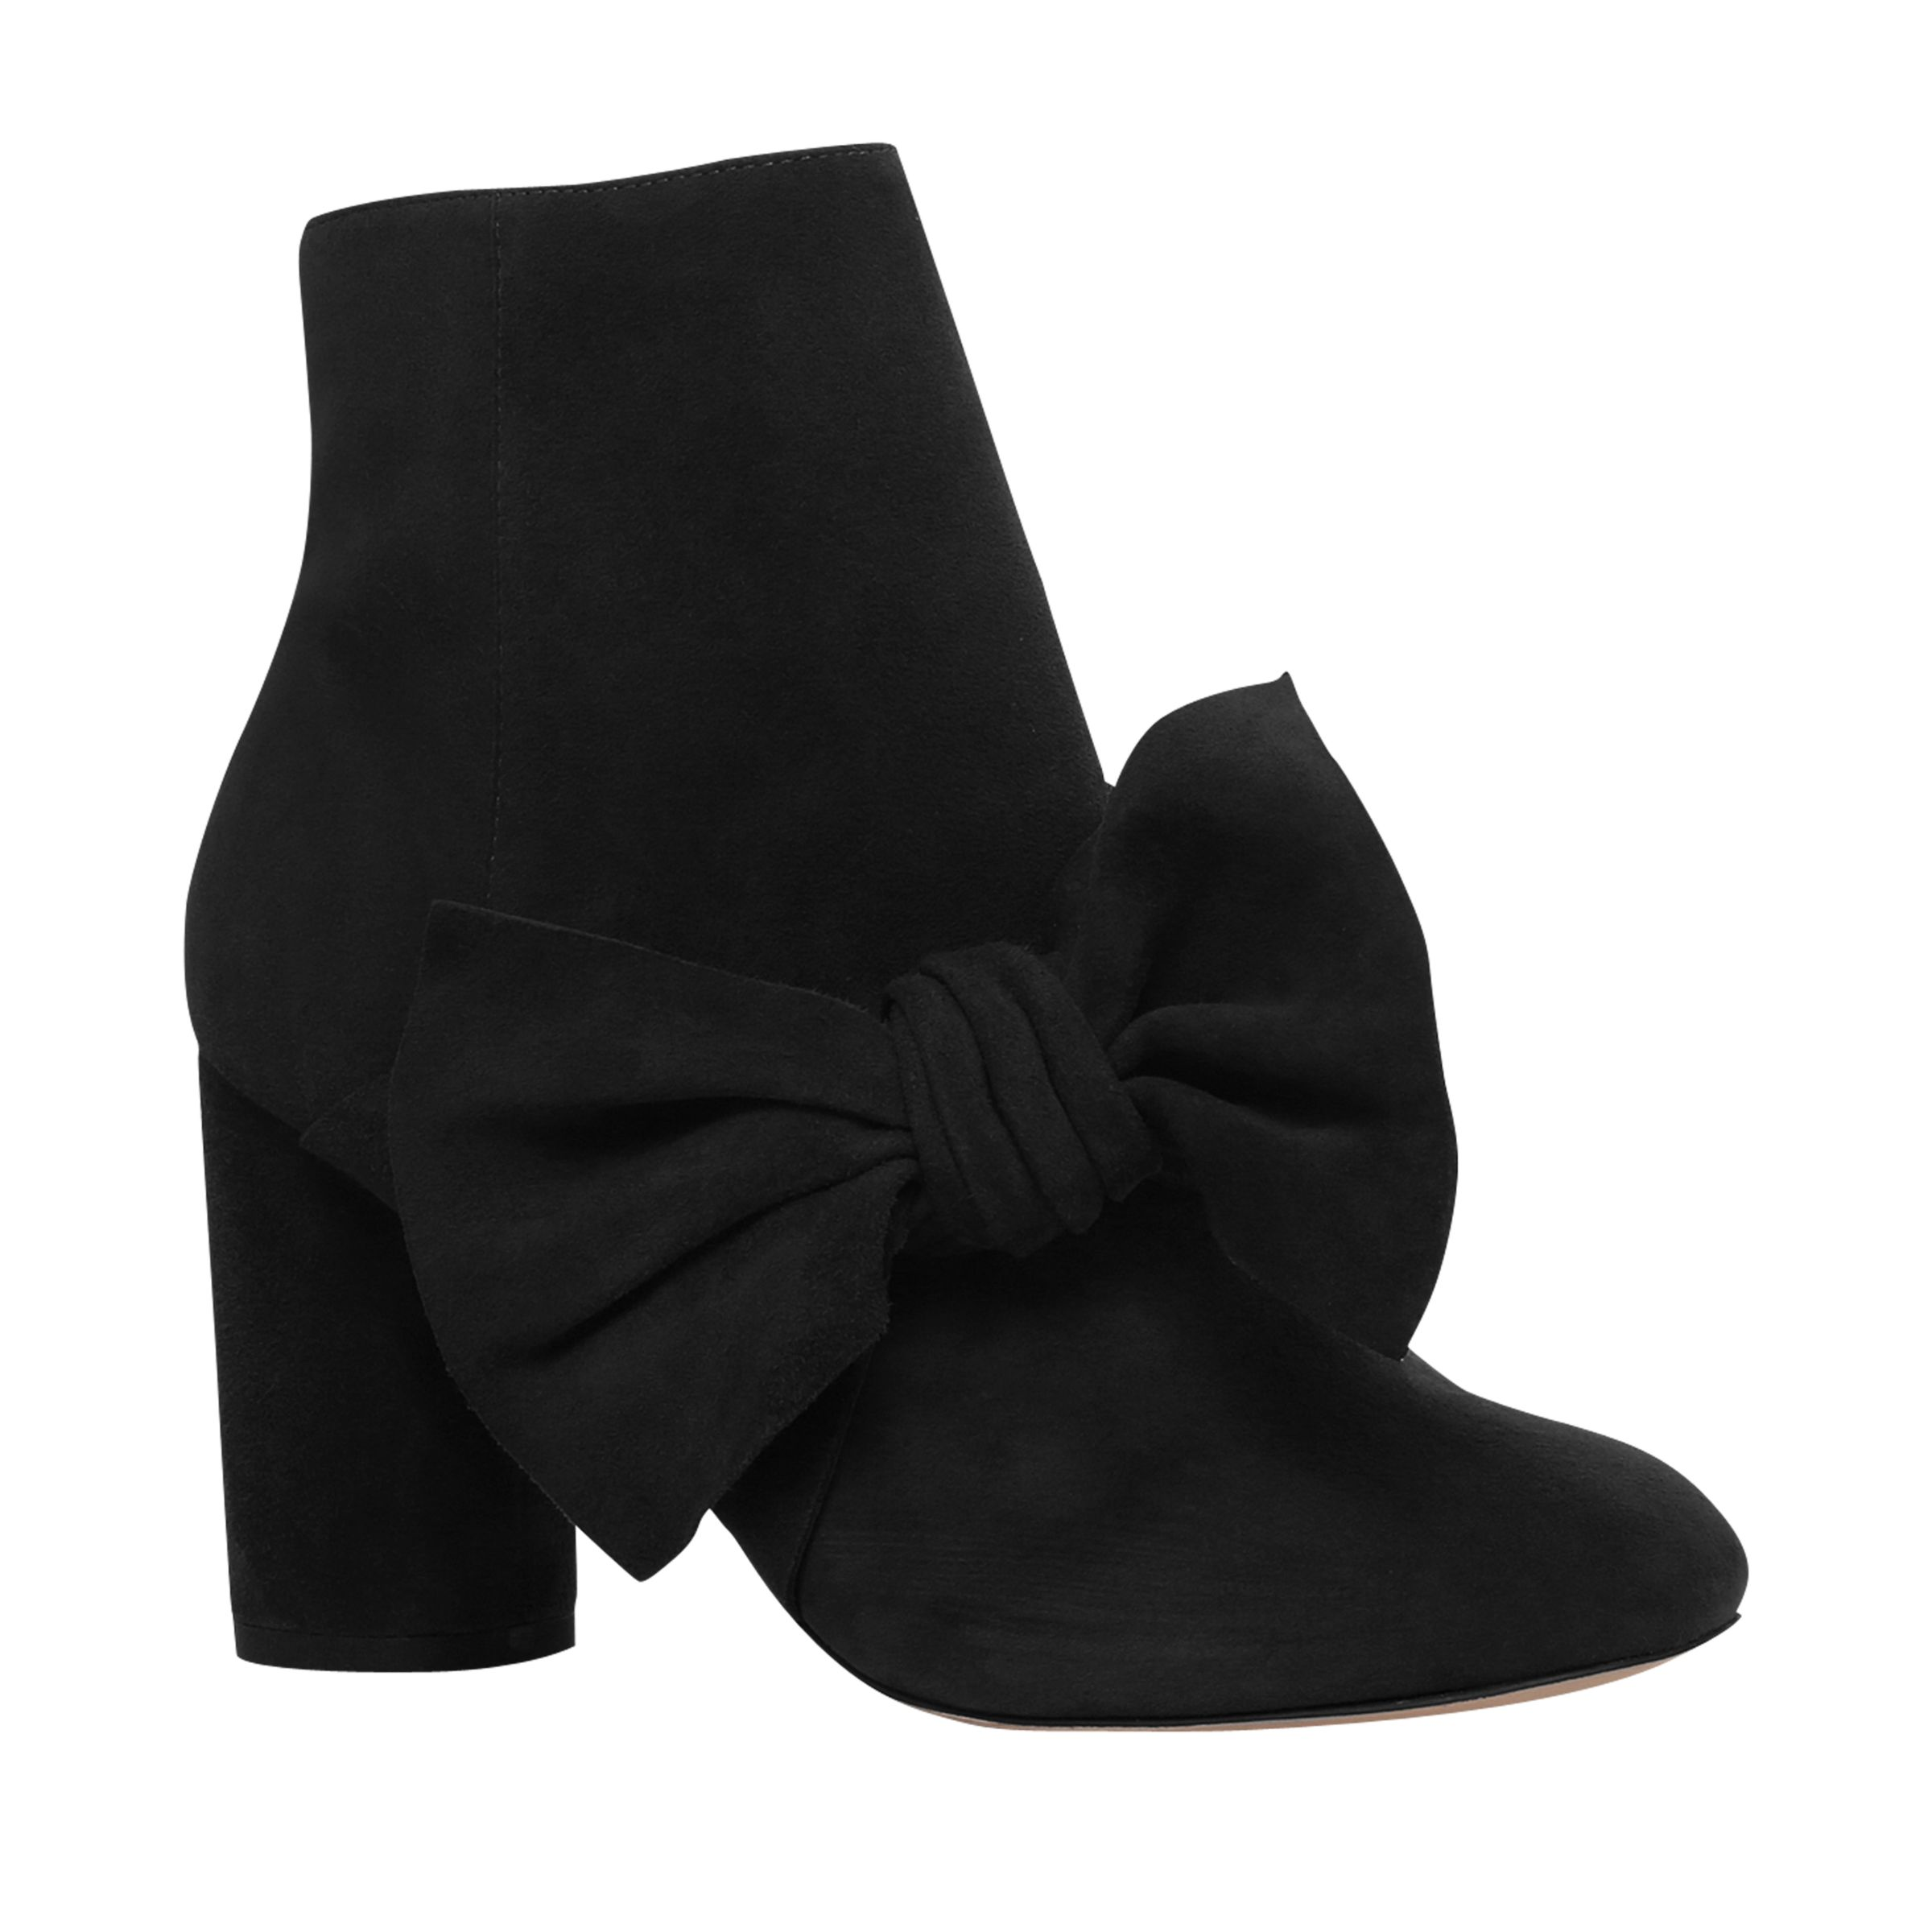 KG by Kurt Geiger KG by Kurt Geiger Rattle Bow Ankle Boots, Black